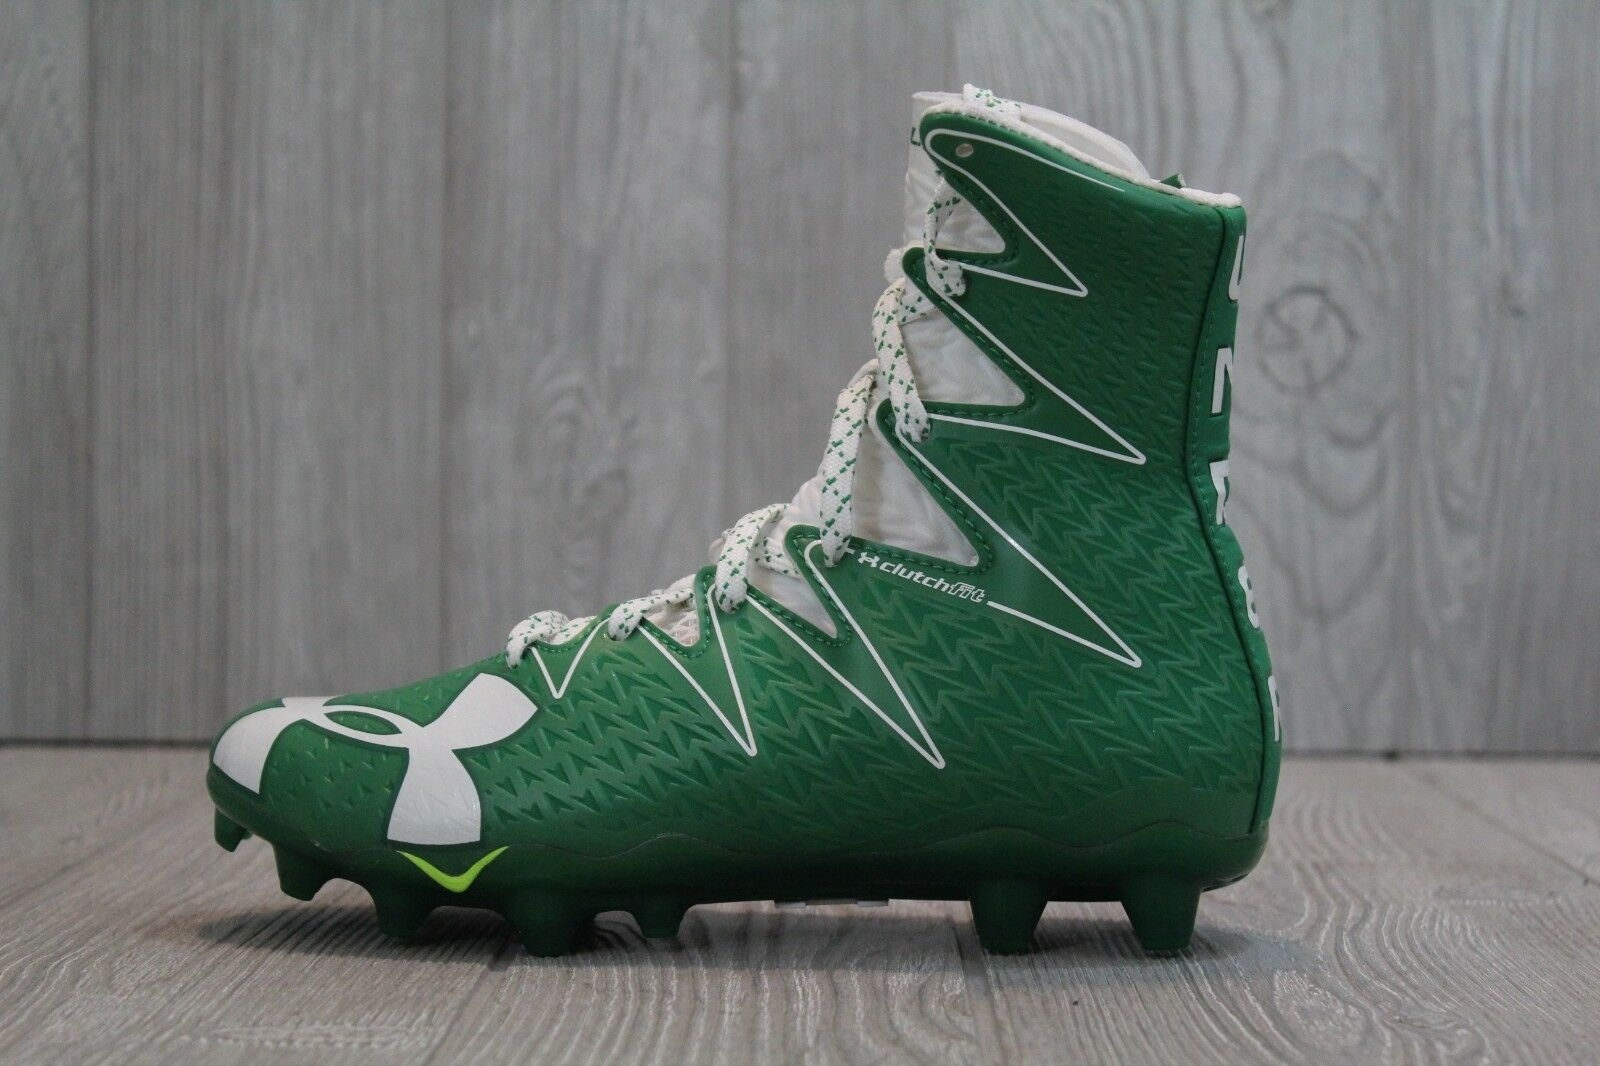 31 Uomo Under Armour Highlight MC Football Cleats Green/White 1269693-312 Size 5